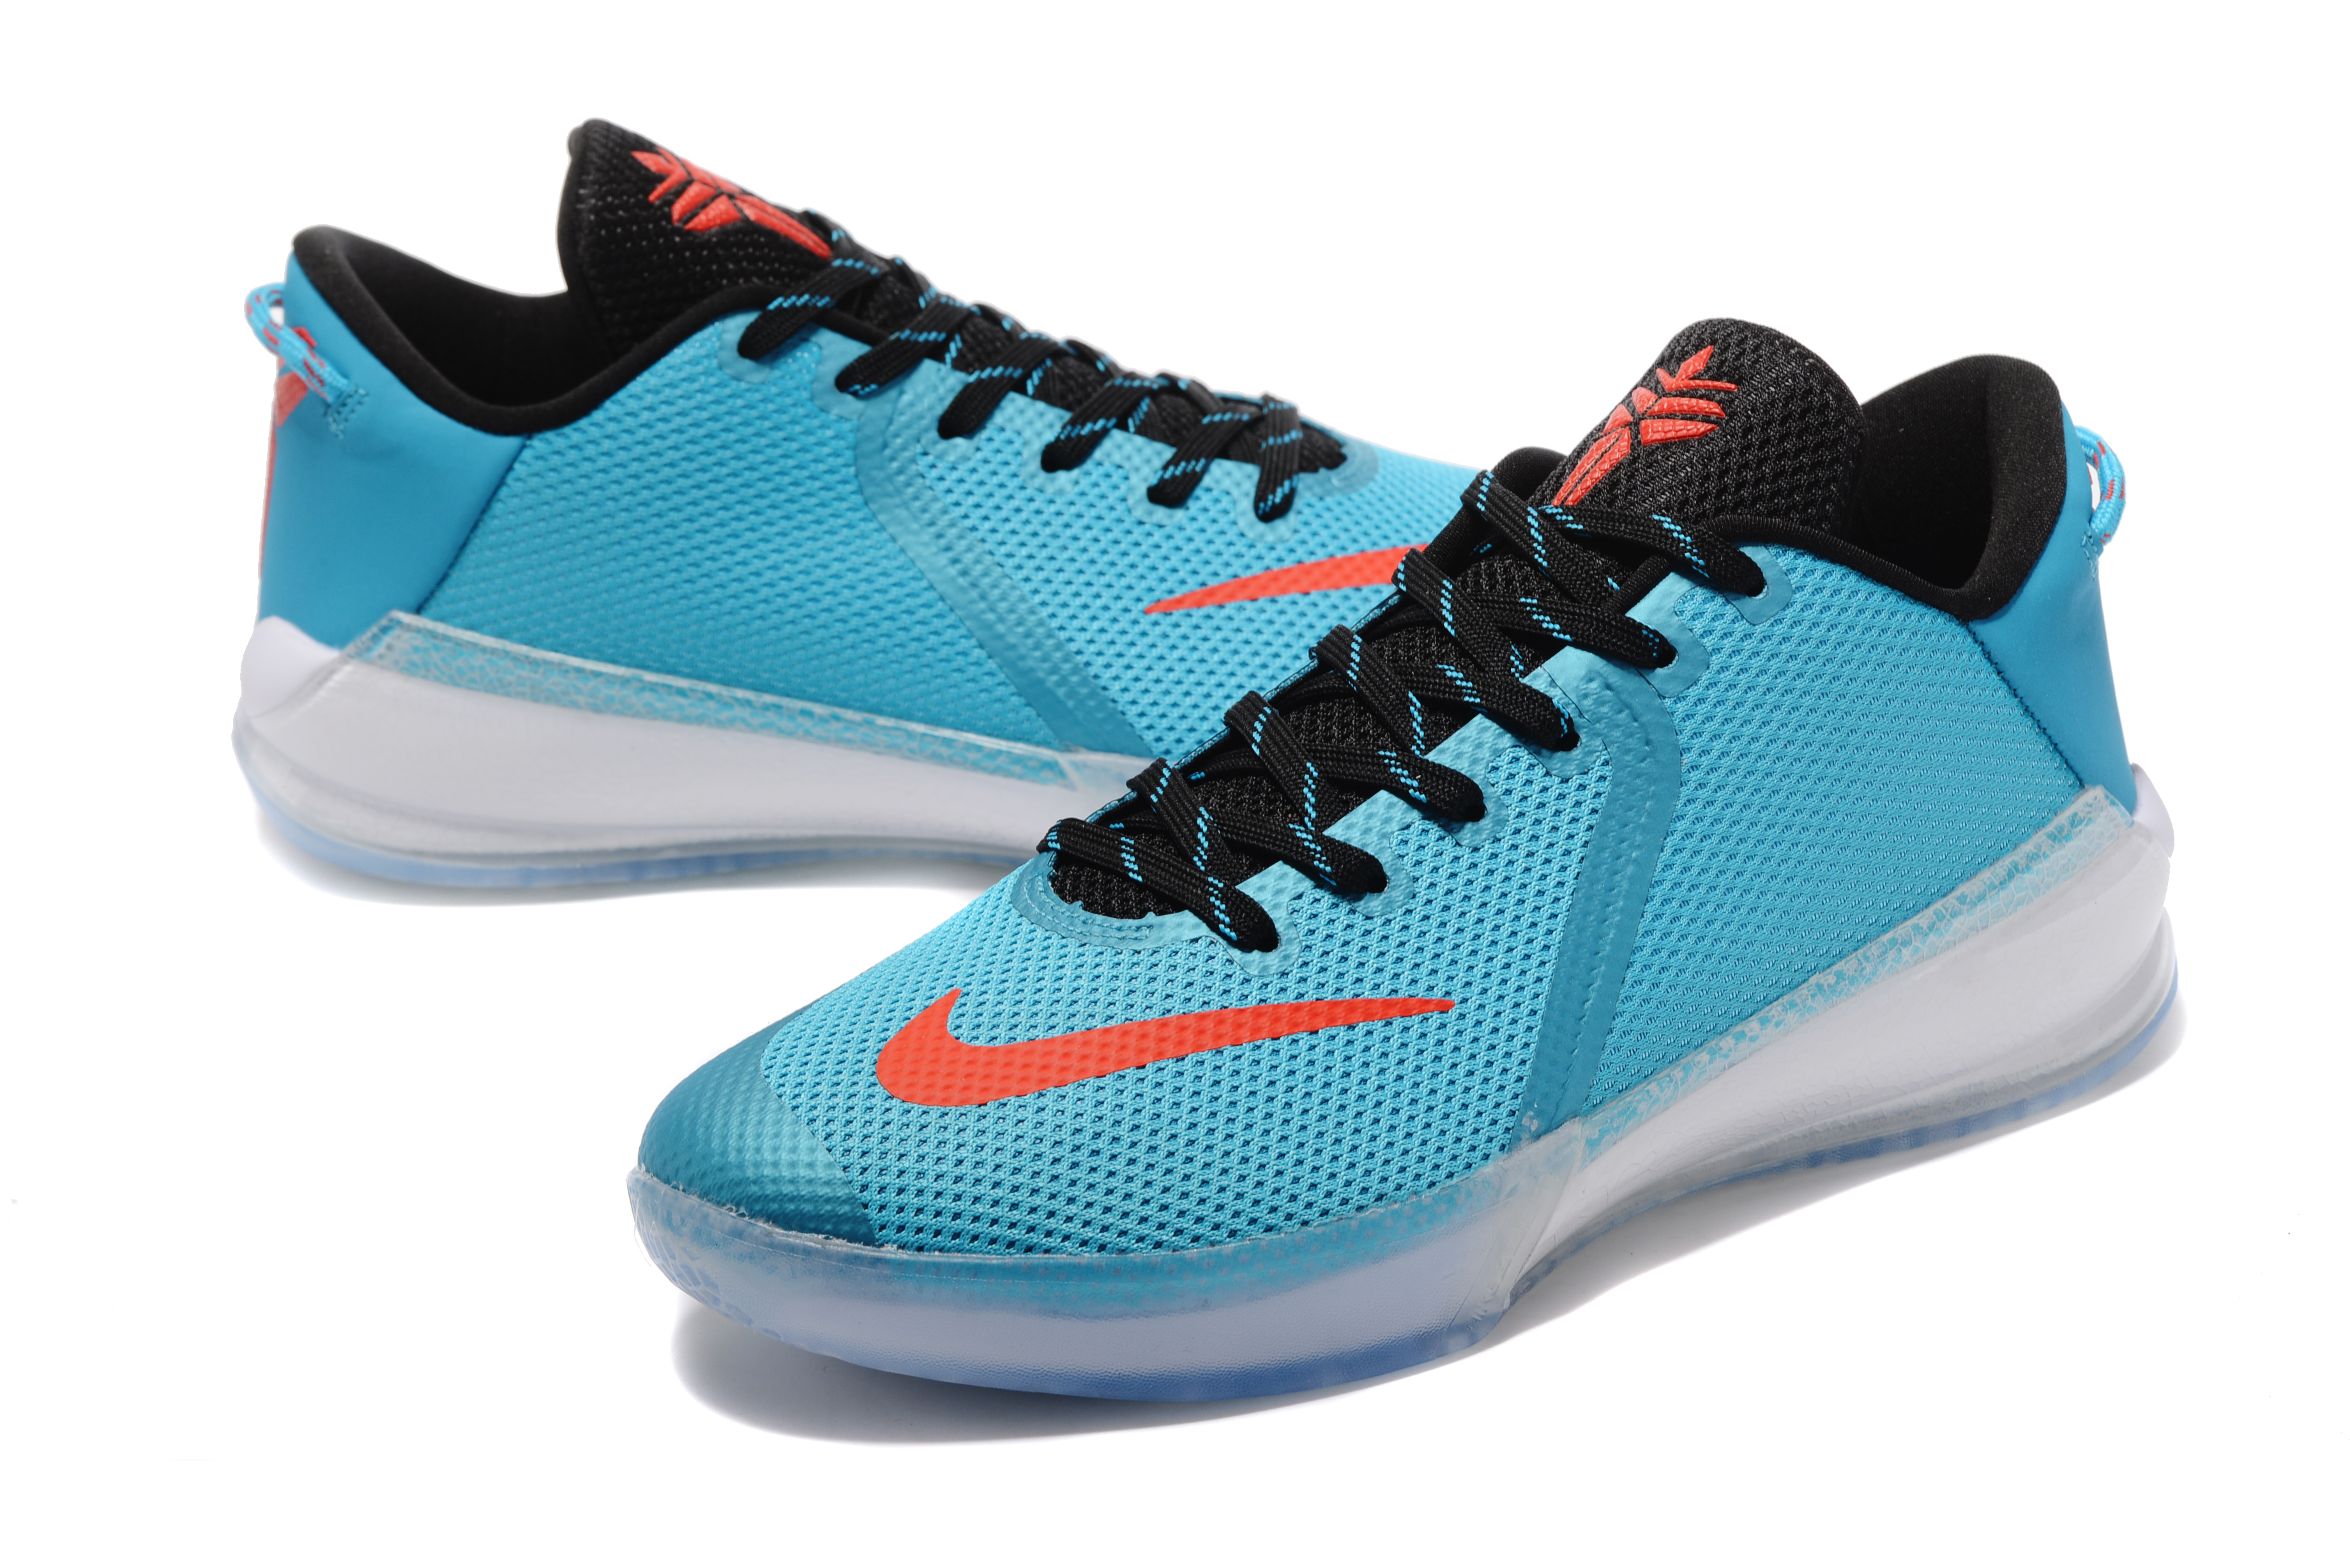 New Kobe Venomenon 6 Ice Blue Black Orange Shoes